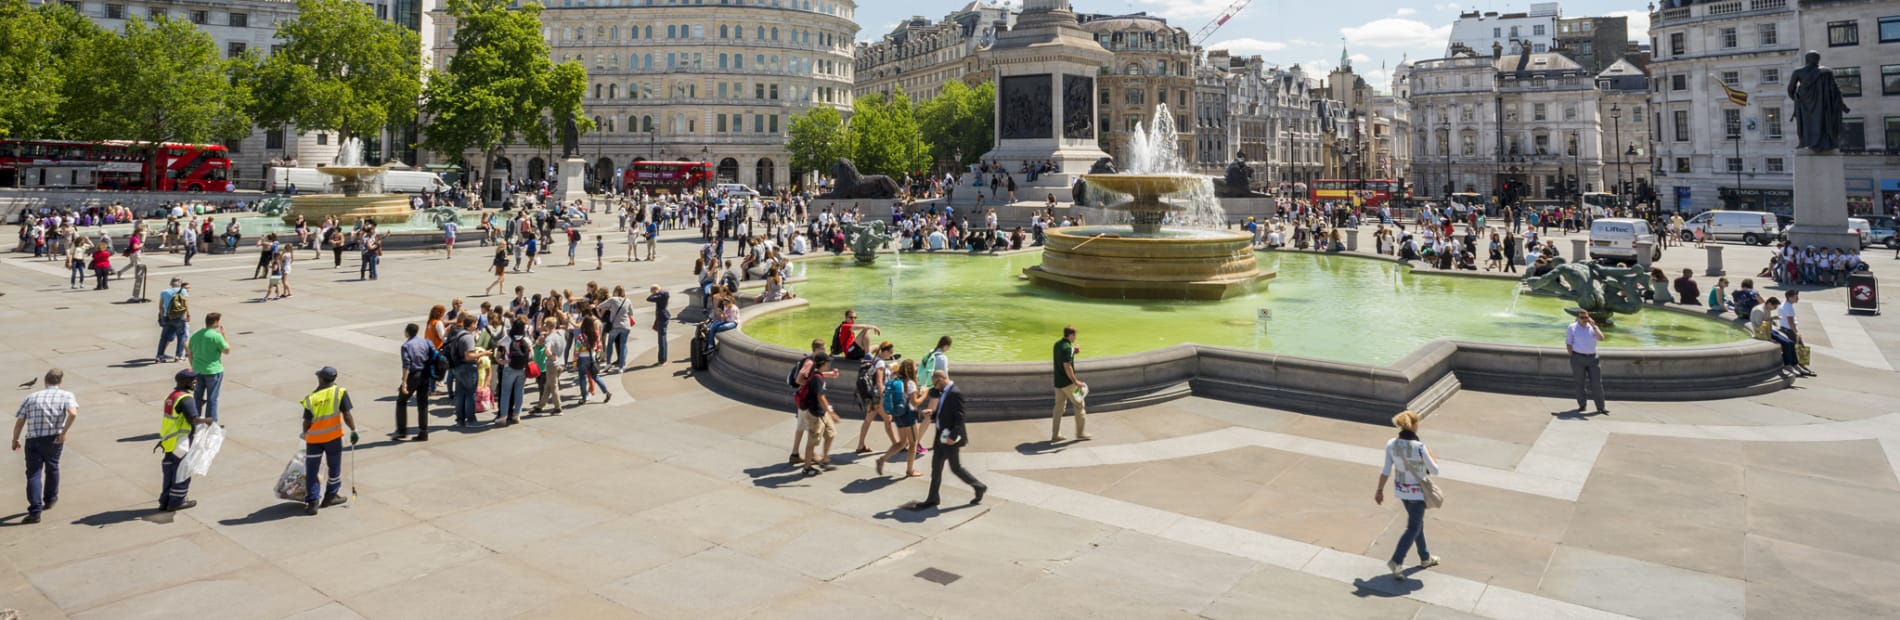 Paving in Trafalgar Square